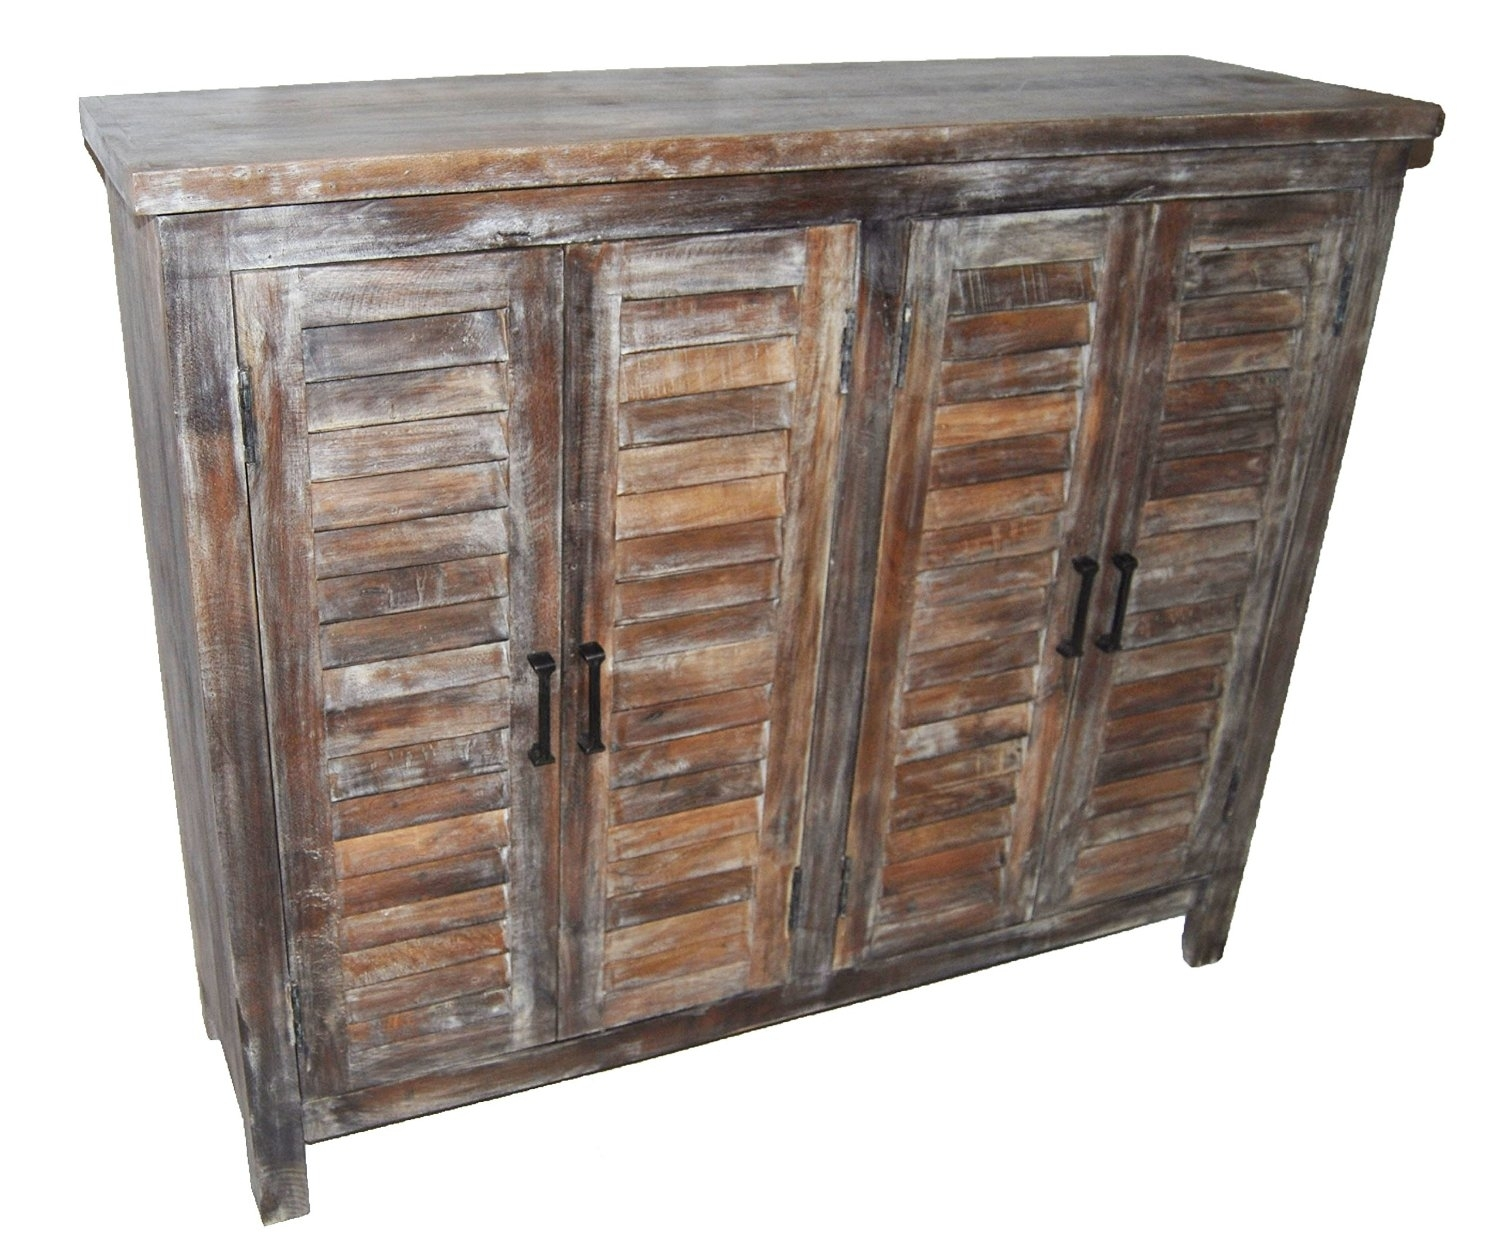 Cheap Reclaimed Sideboard, Find Reclaimed Sideboard Deals On Line At intended for White Wash 4-Door Galvanized Sideboards (Image 4 of 30)